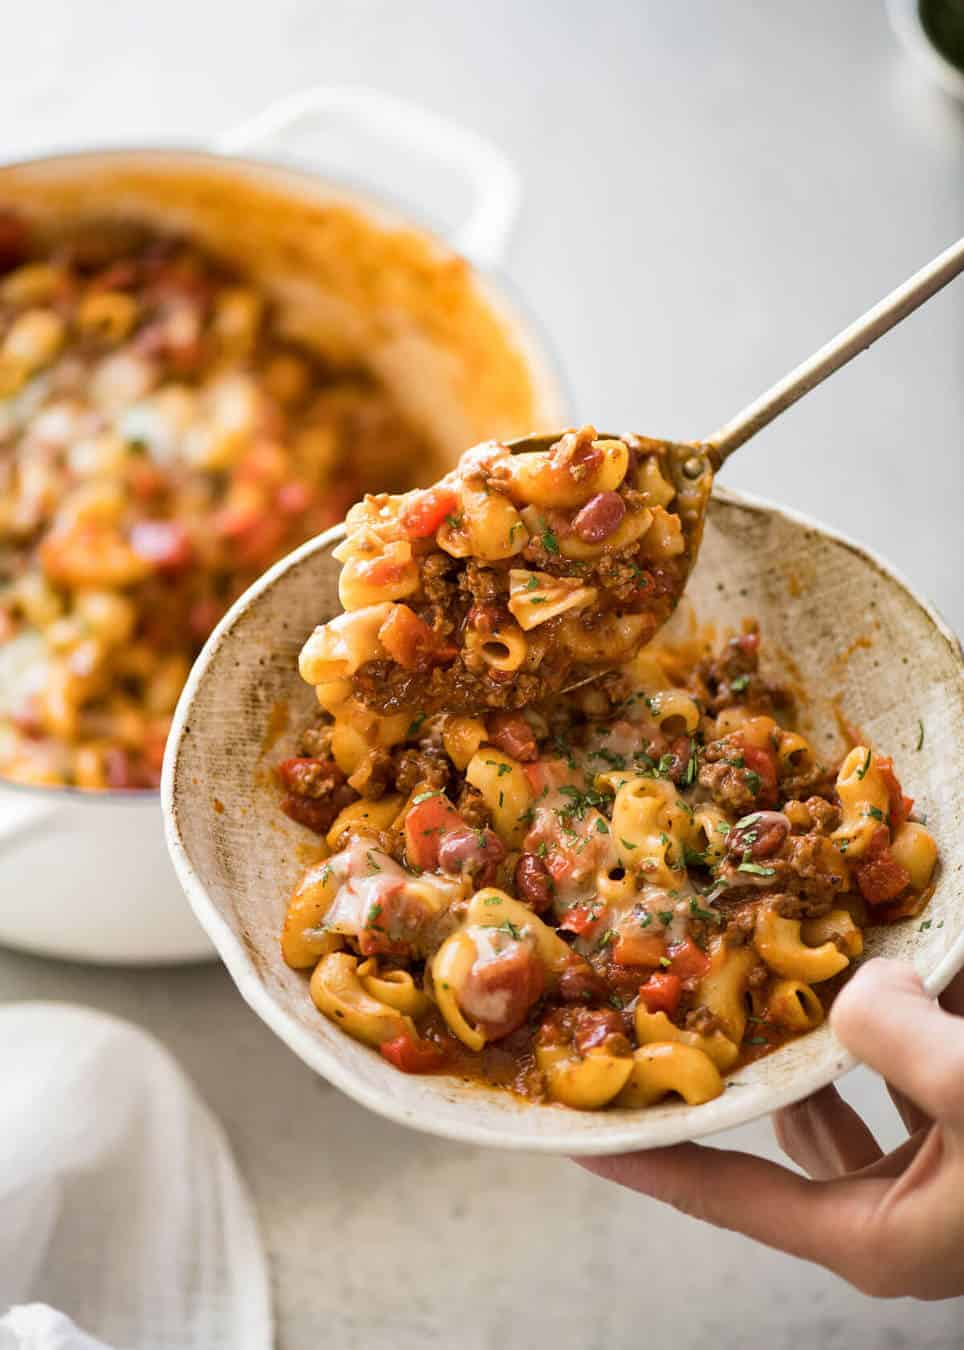 One Pot Chili Mac and Cheese - devilishly delicious, on the table in just over 20 minutes. www.recipetineats.com